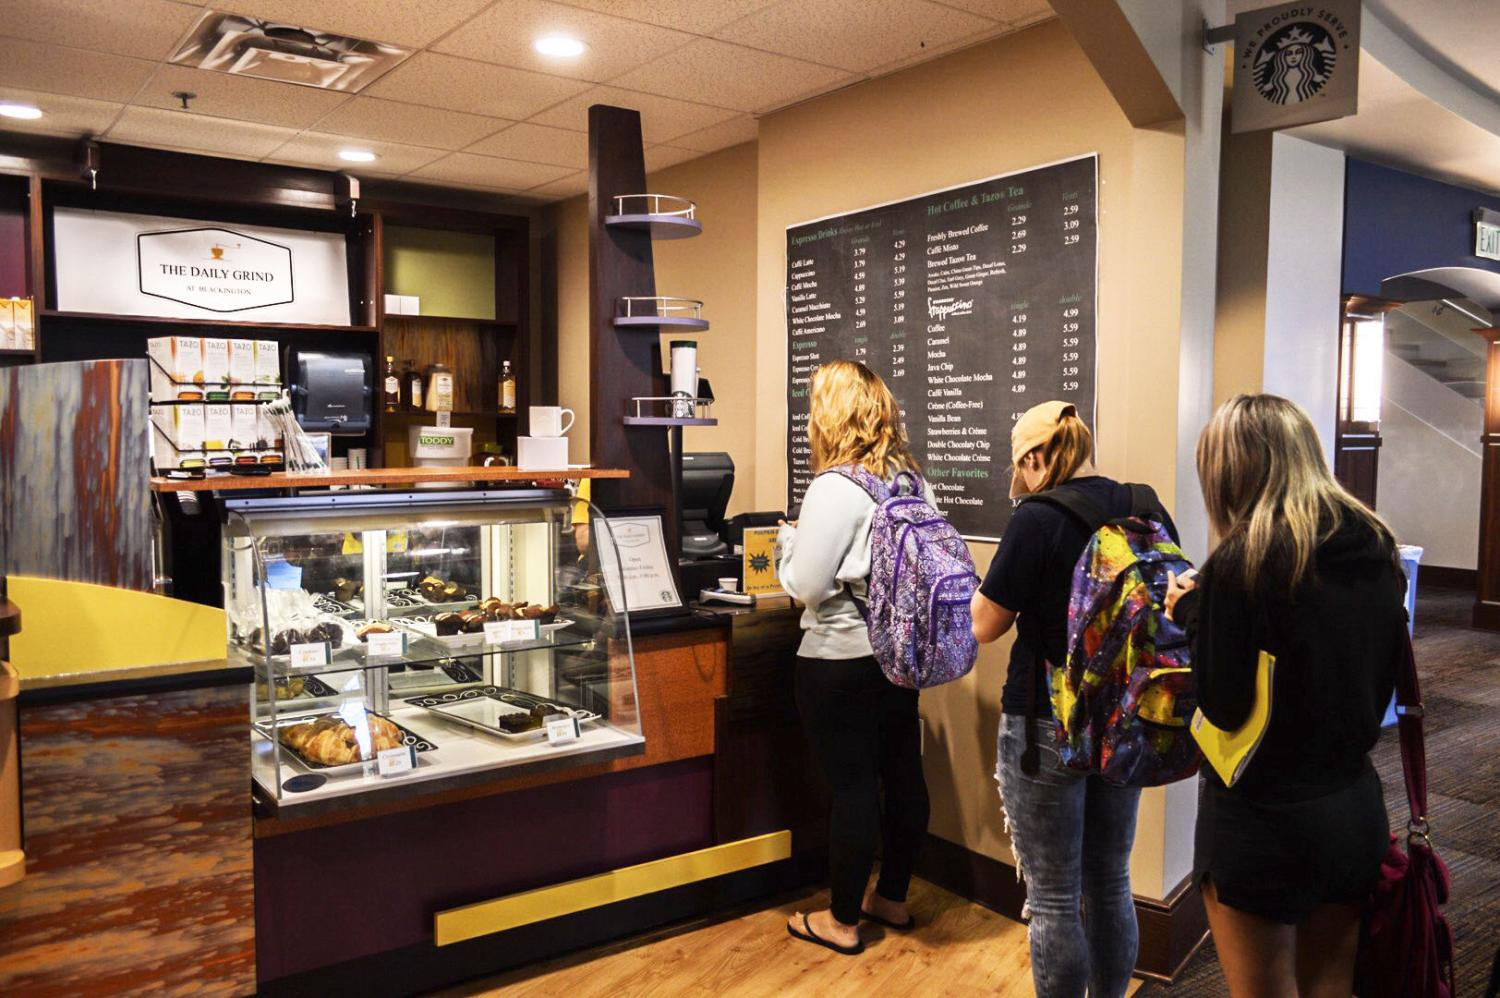 Students wait in line at The Daily Grind, a new food and coffee stop that replaced Biddle Hall's Jazzman's this semester. The stop is in Blackington Hall's first floor.